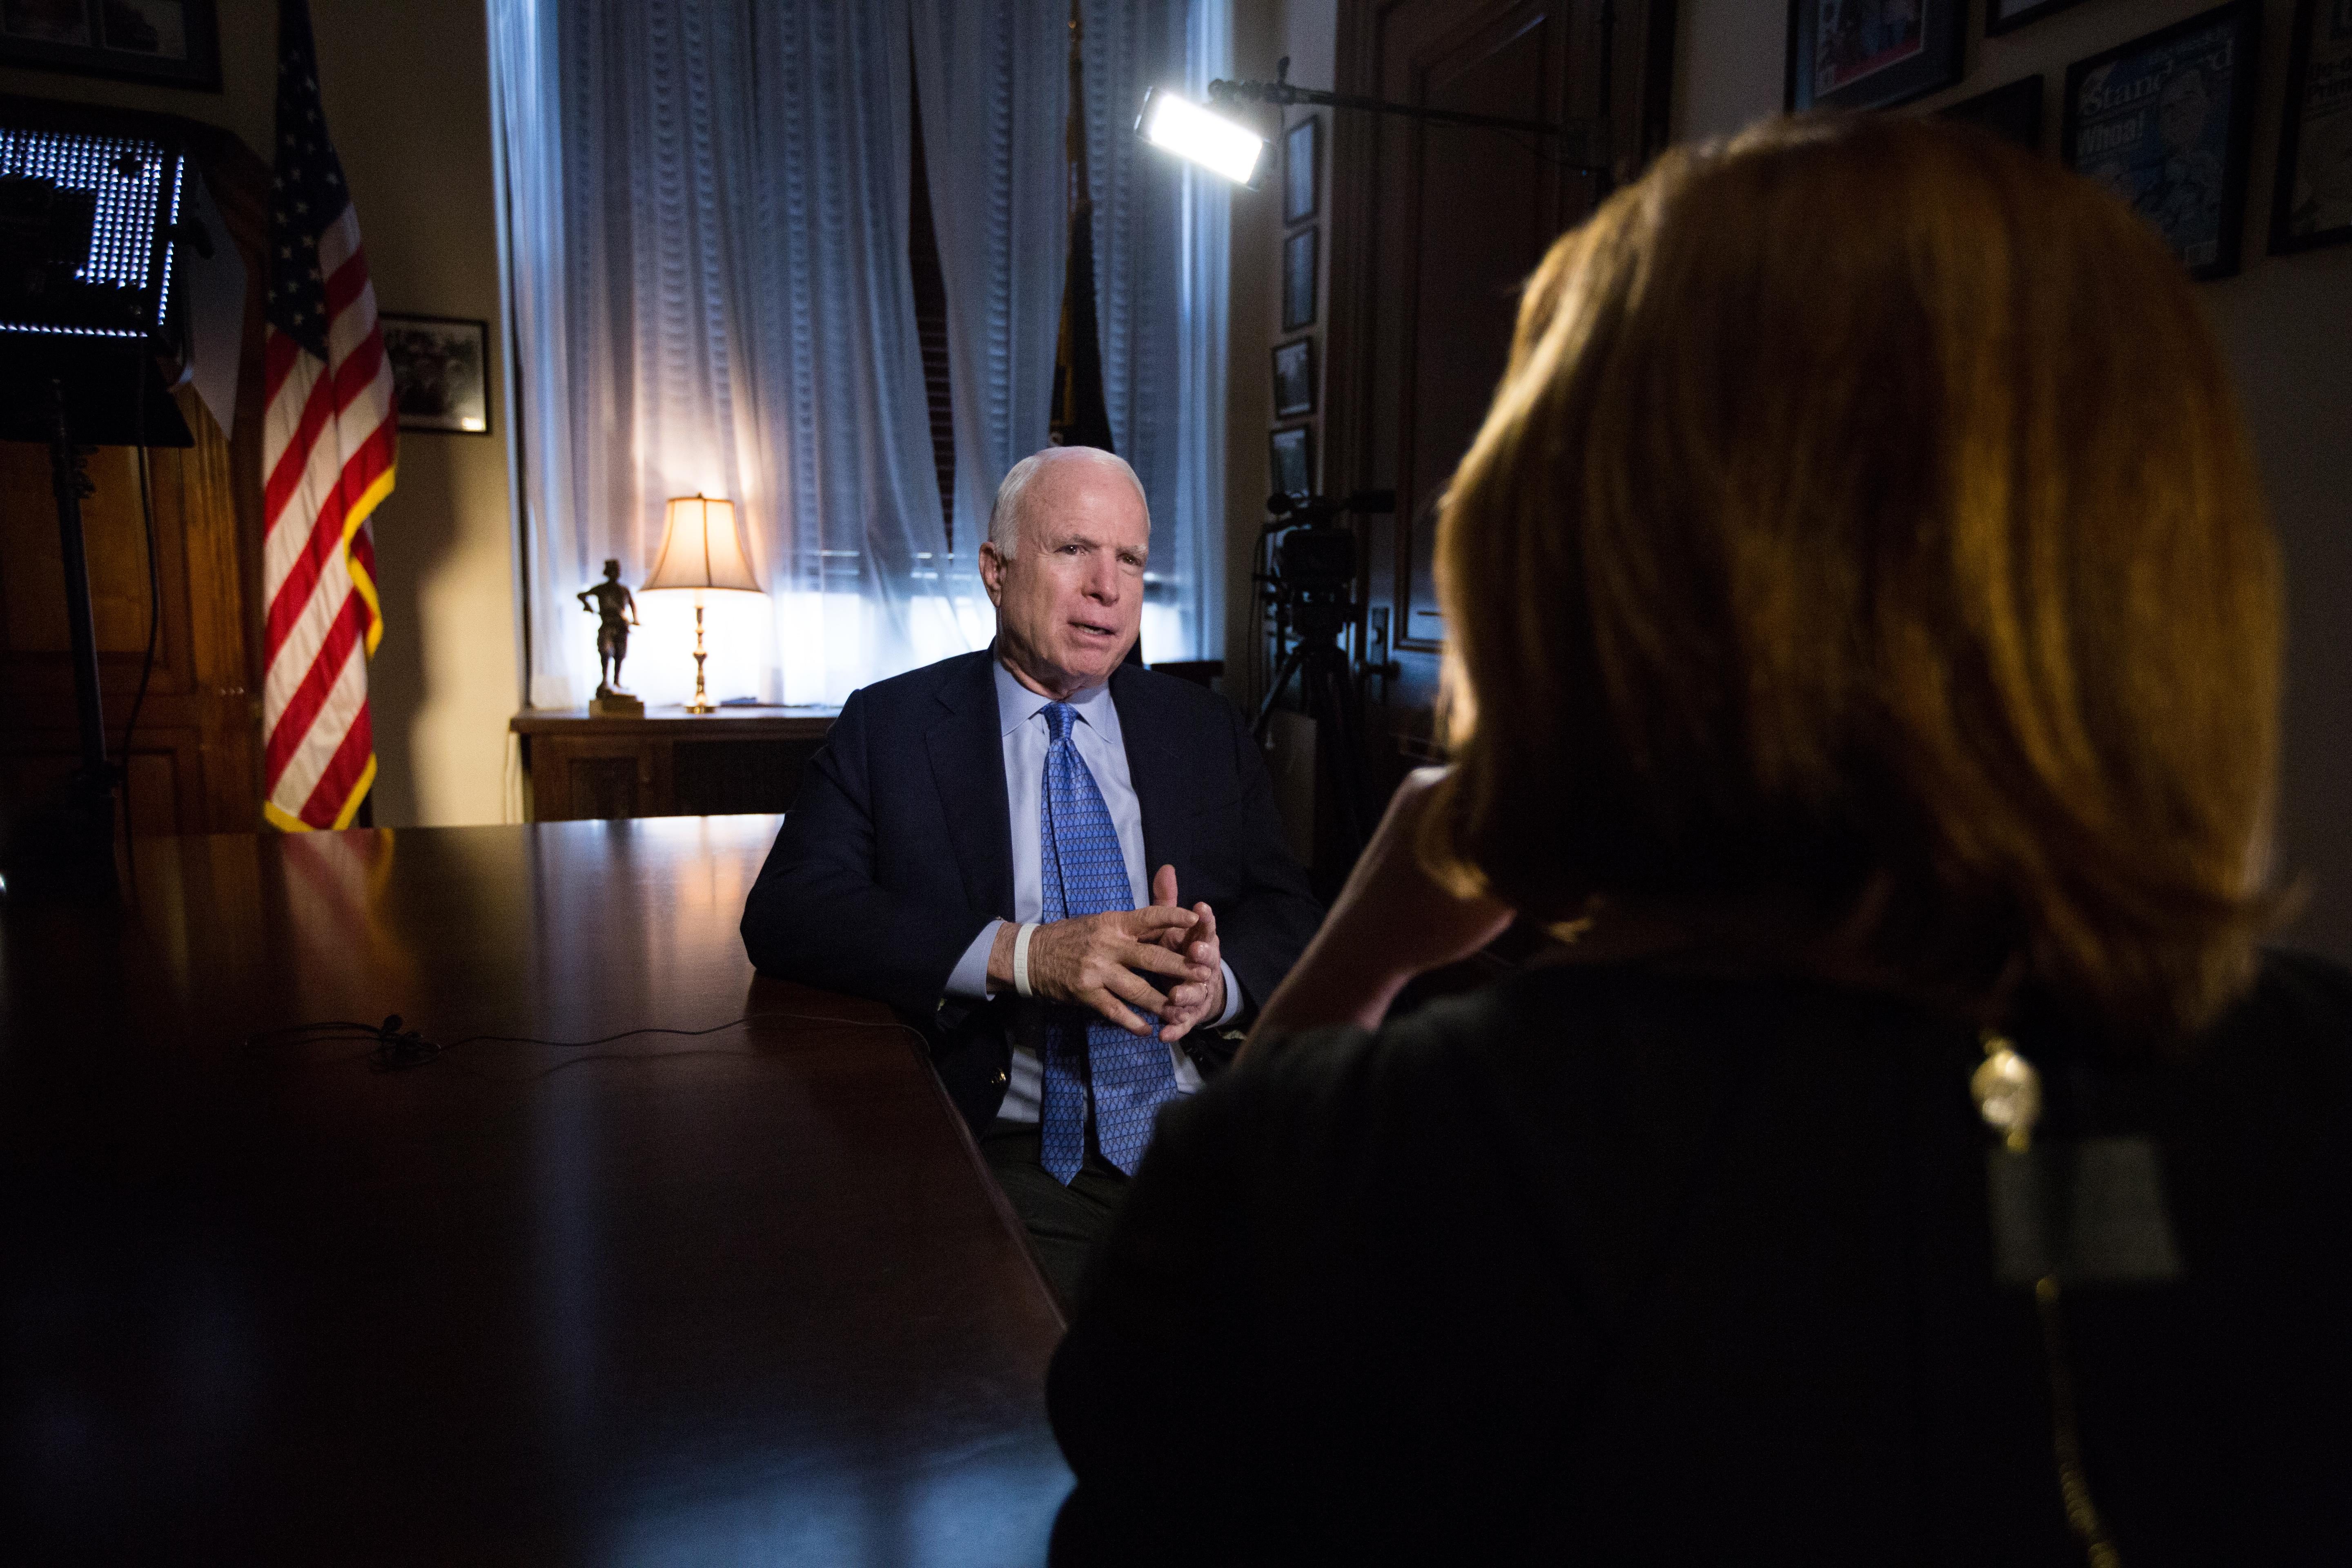 John McCain Will Run for Re-Election to the Senate in 2016